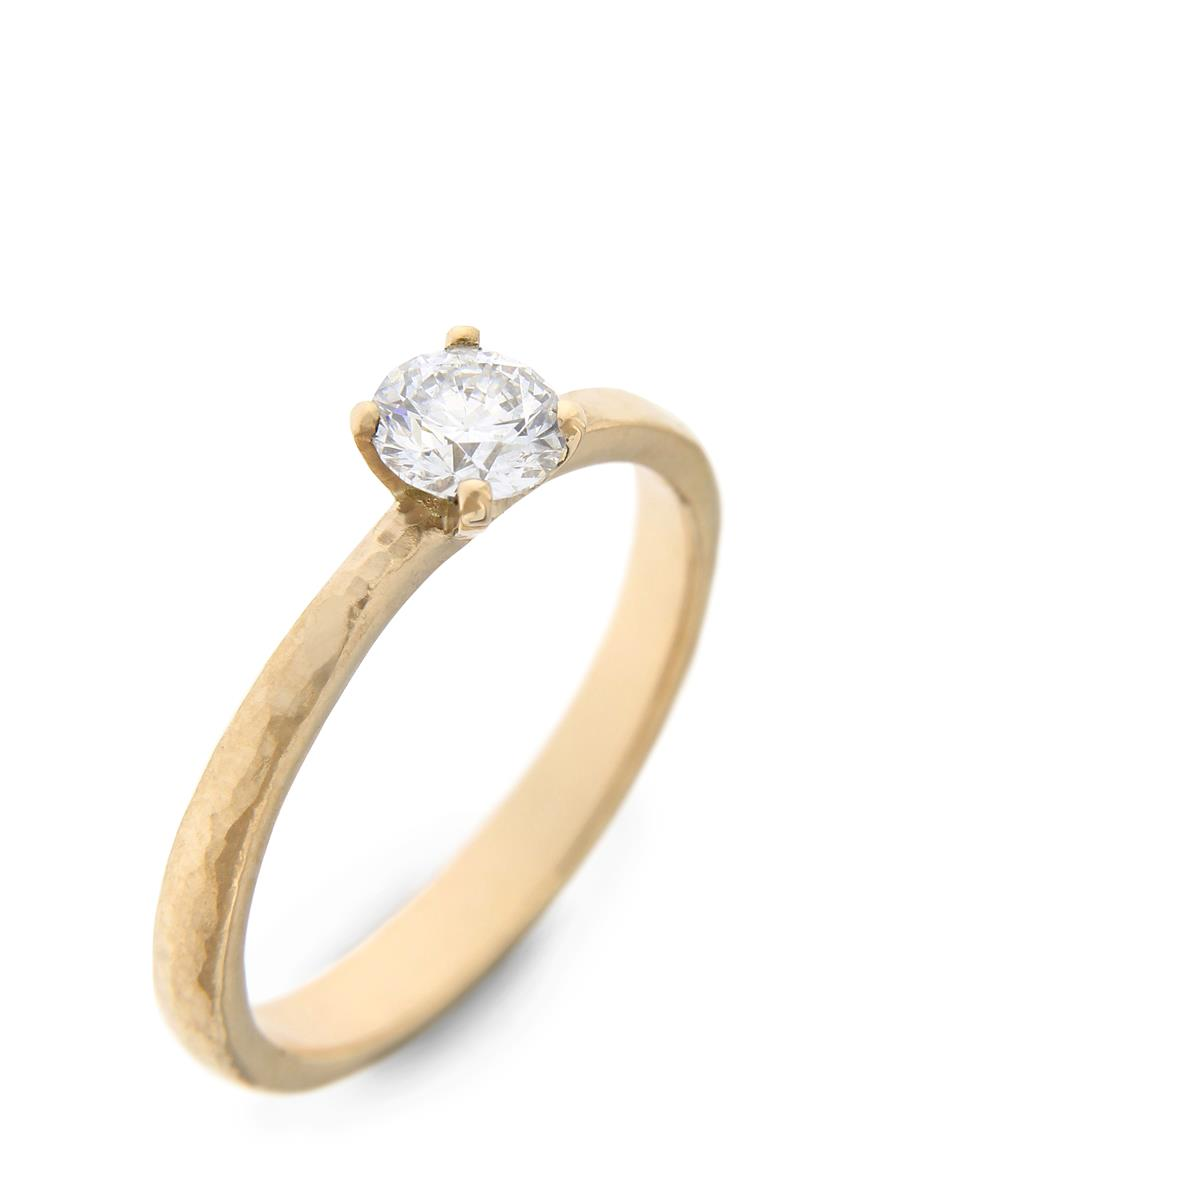 Katie g. Jewellery_Hammered GG + Brillant Solitaire